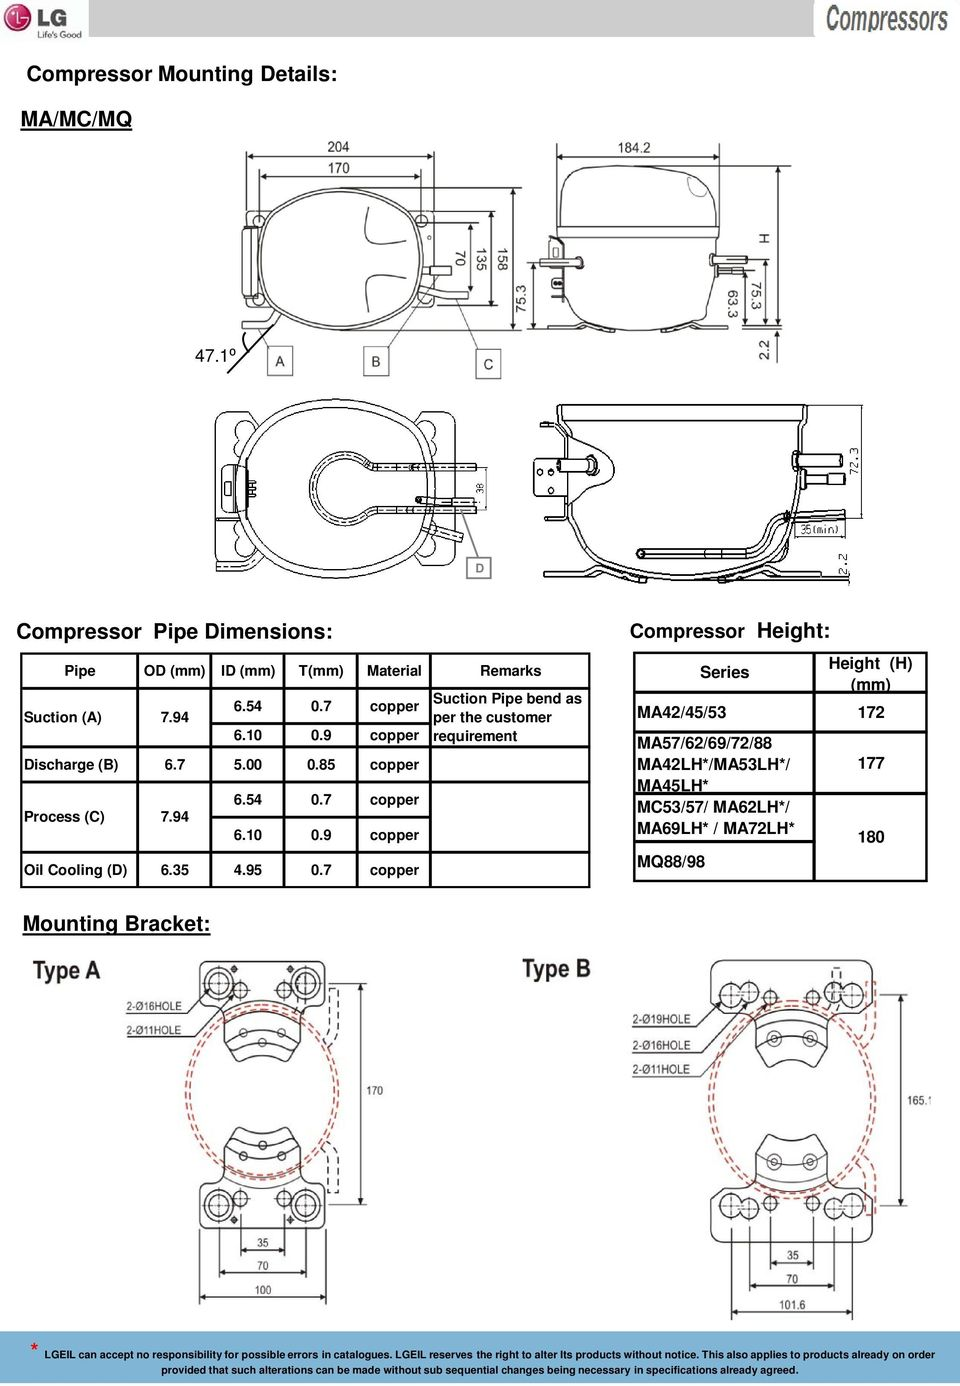 Lg Refrigeration Compressors Refrigerants R 134a 600a Hermetic Refrigerator Electrical Wiring Diagram Pdf 9 Copper Discharge B 67 500 085 Process C 794 654